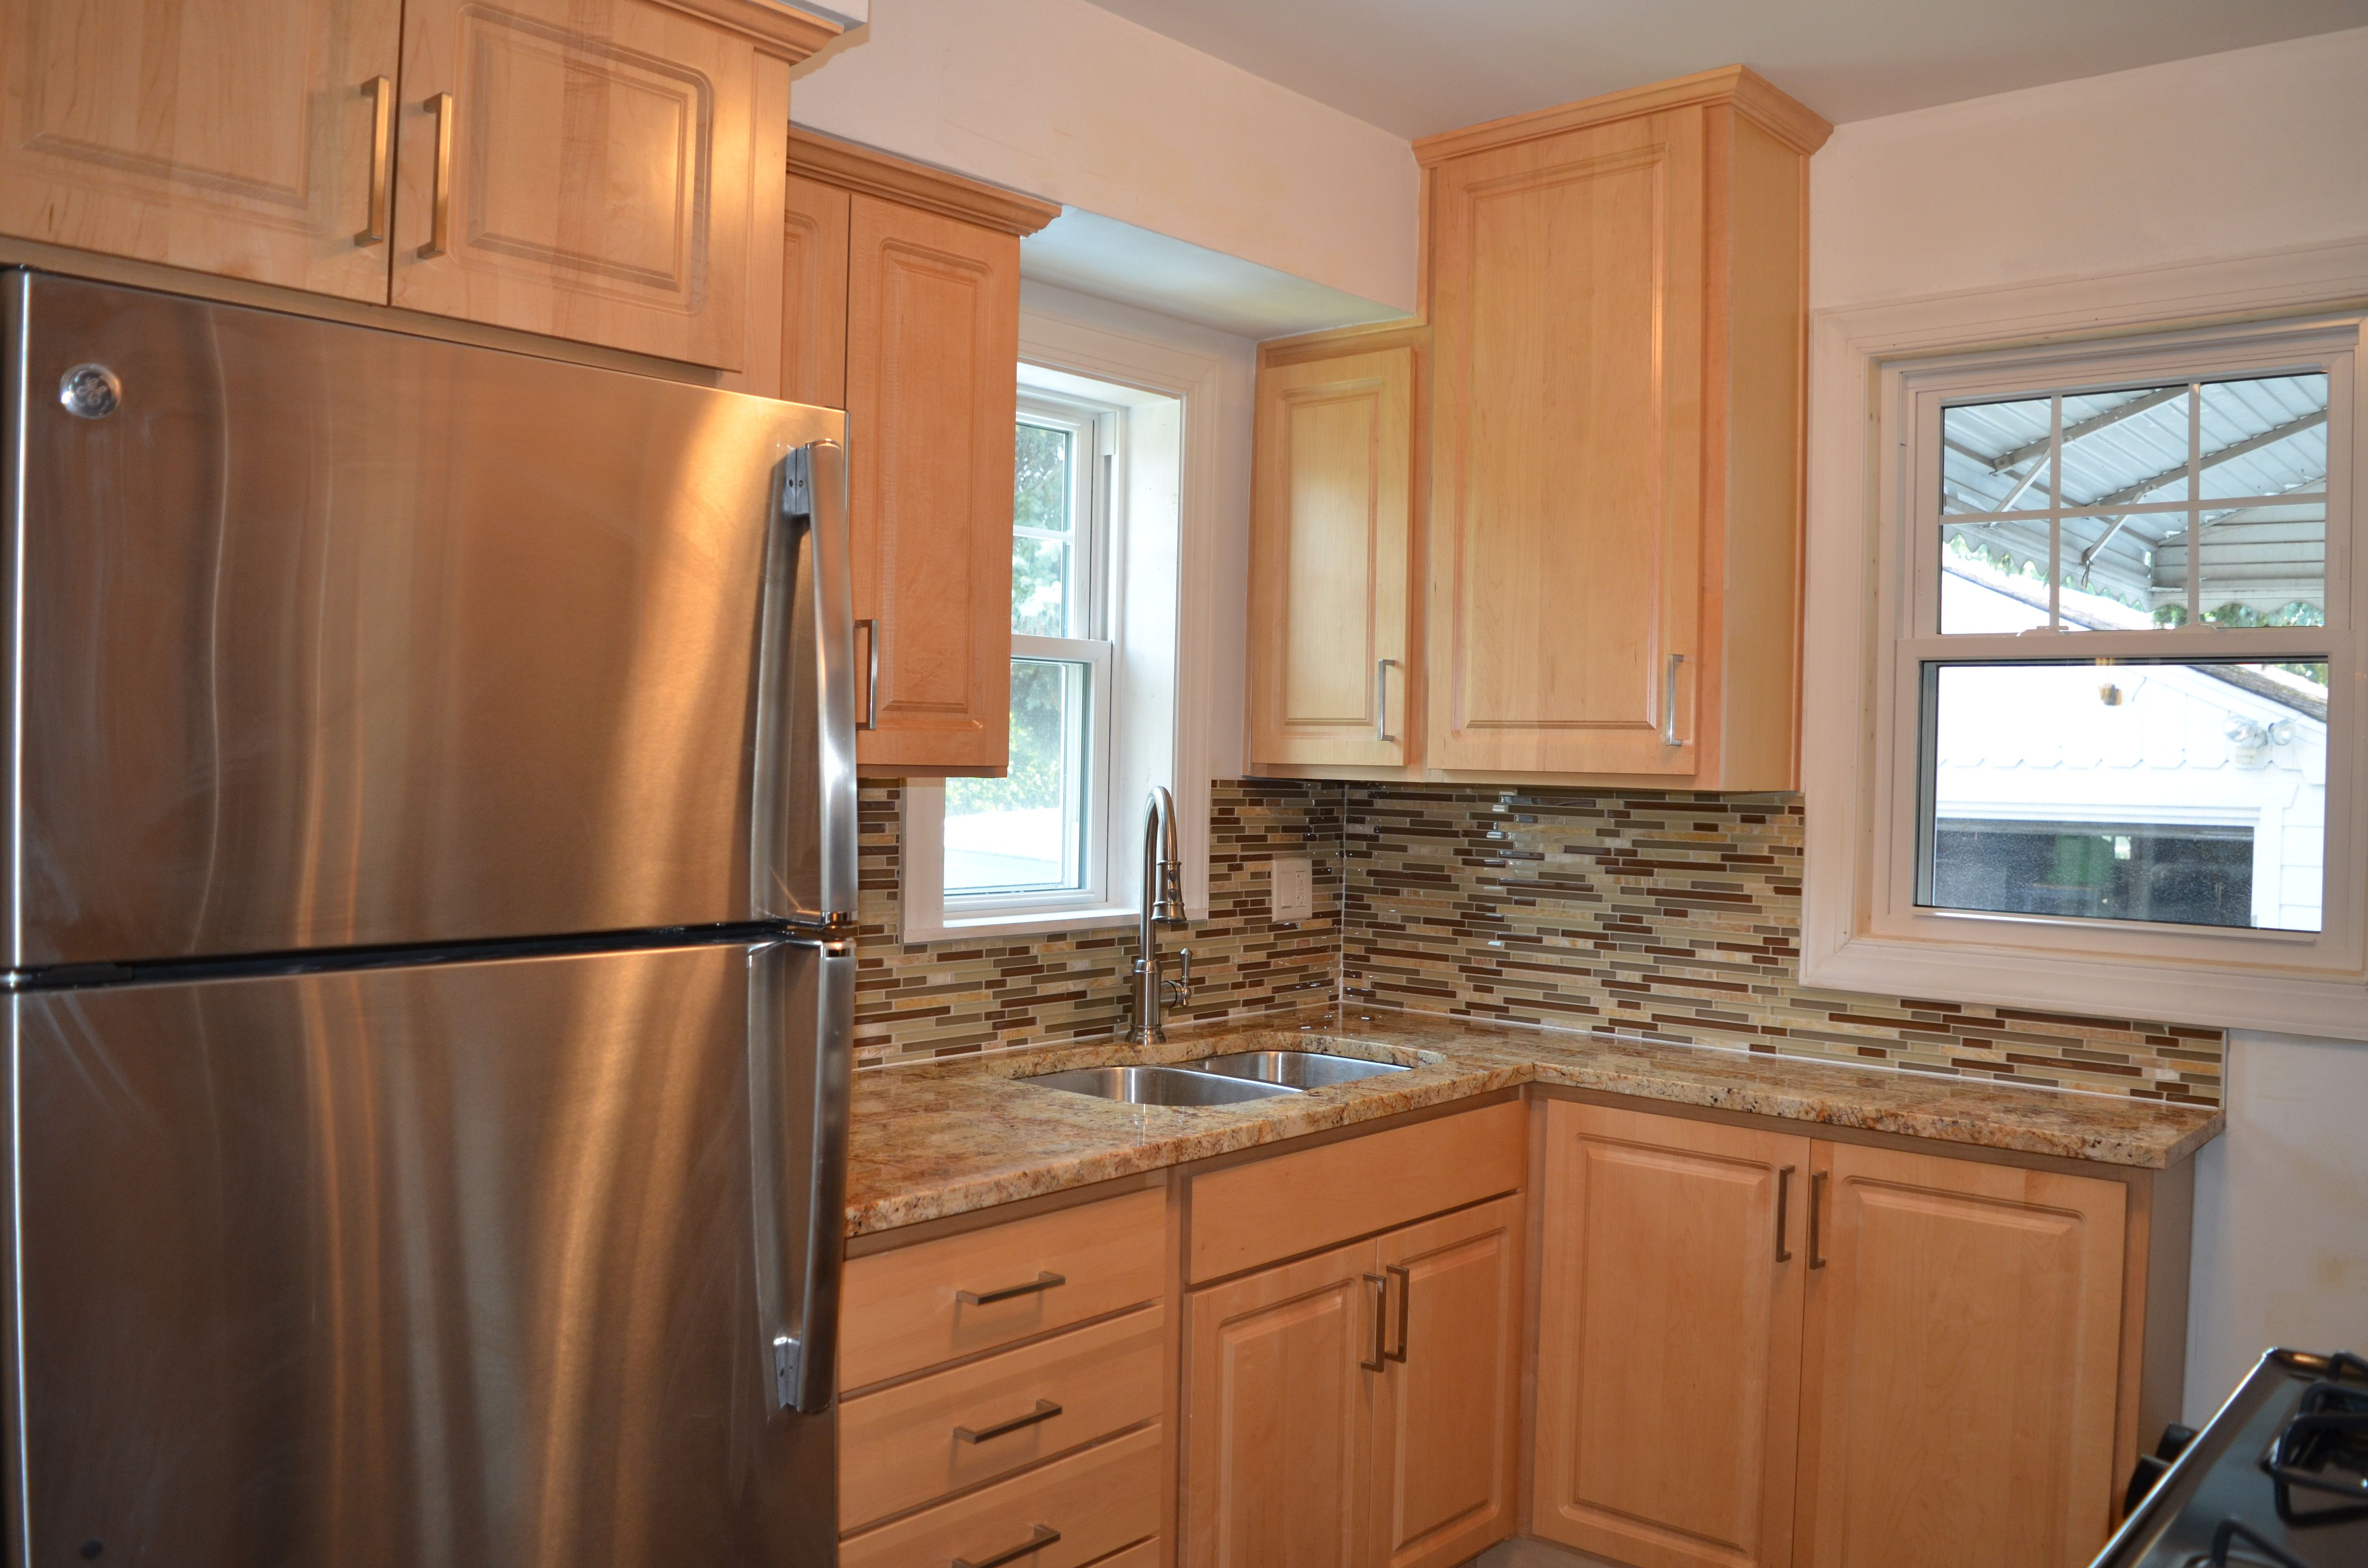 Kitchen remodel with natural maple cabinets, granite ... on Maple Cabinets With Backsplash  id=61275